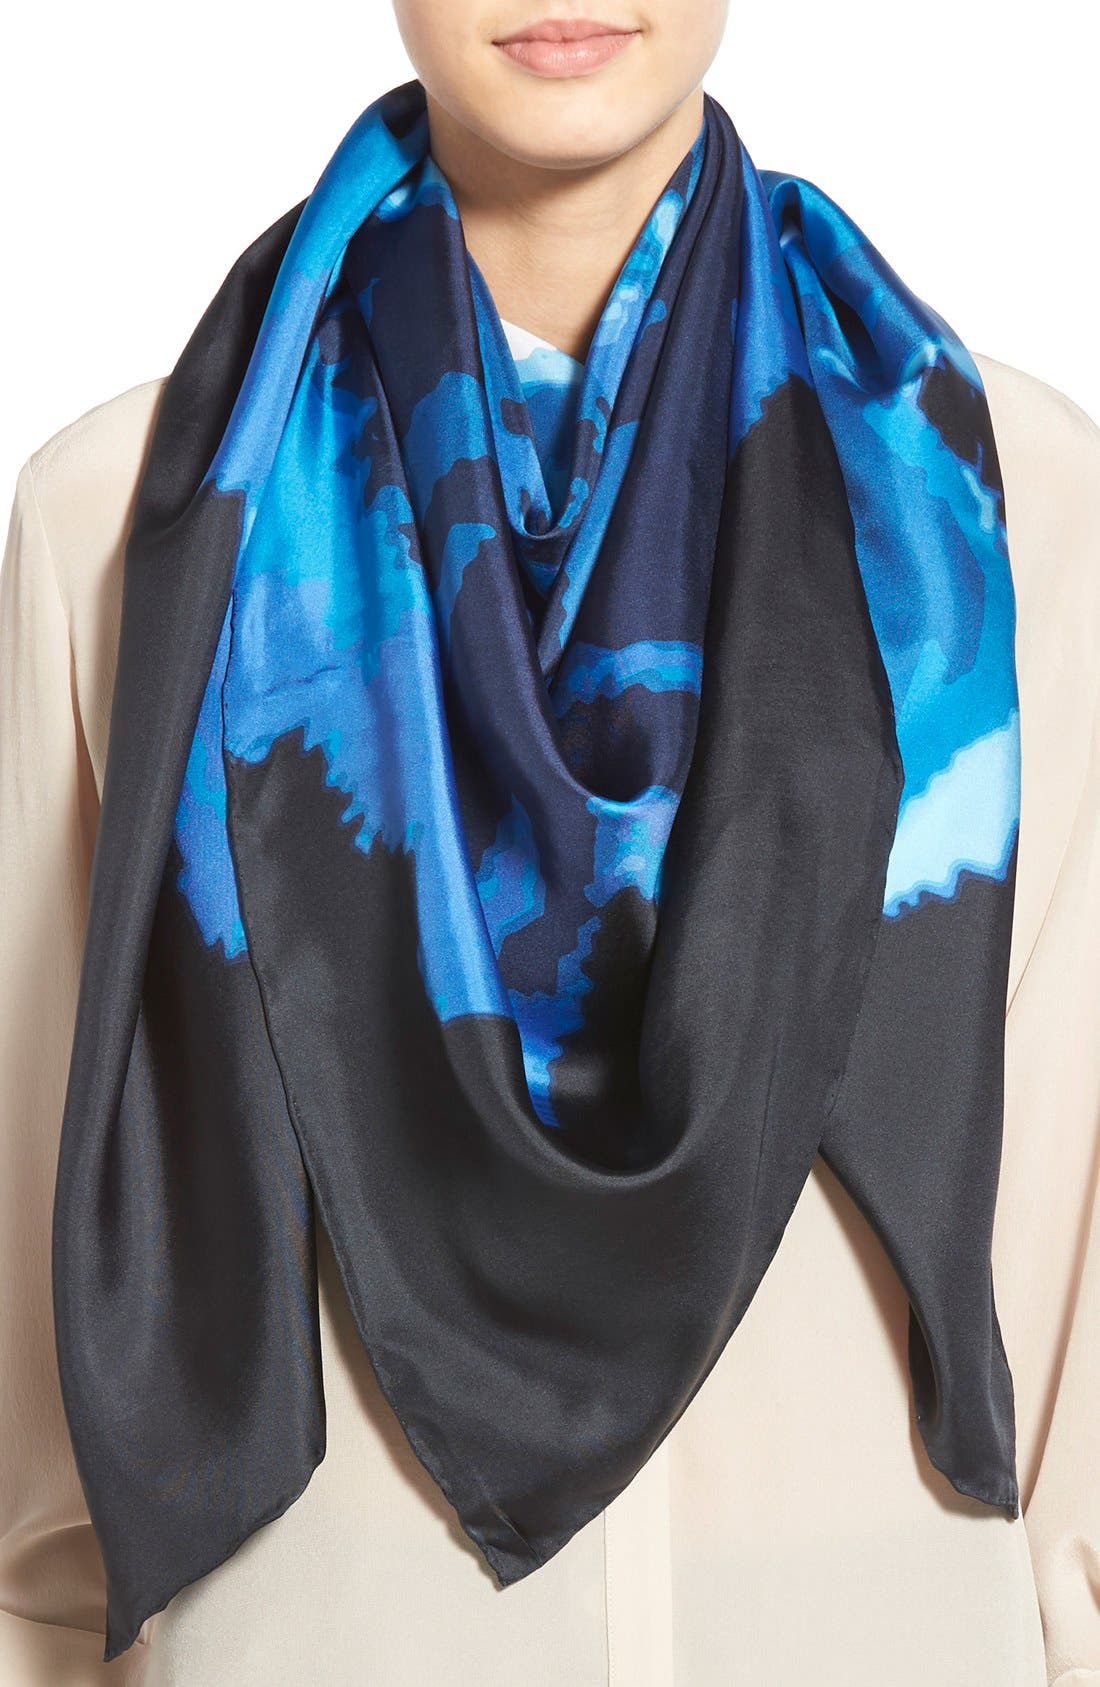 Main Image - Badgley Mischka 'Claremont' Rose' Silk Square Scarf